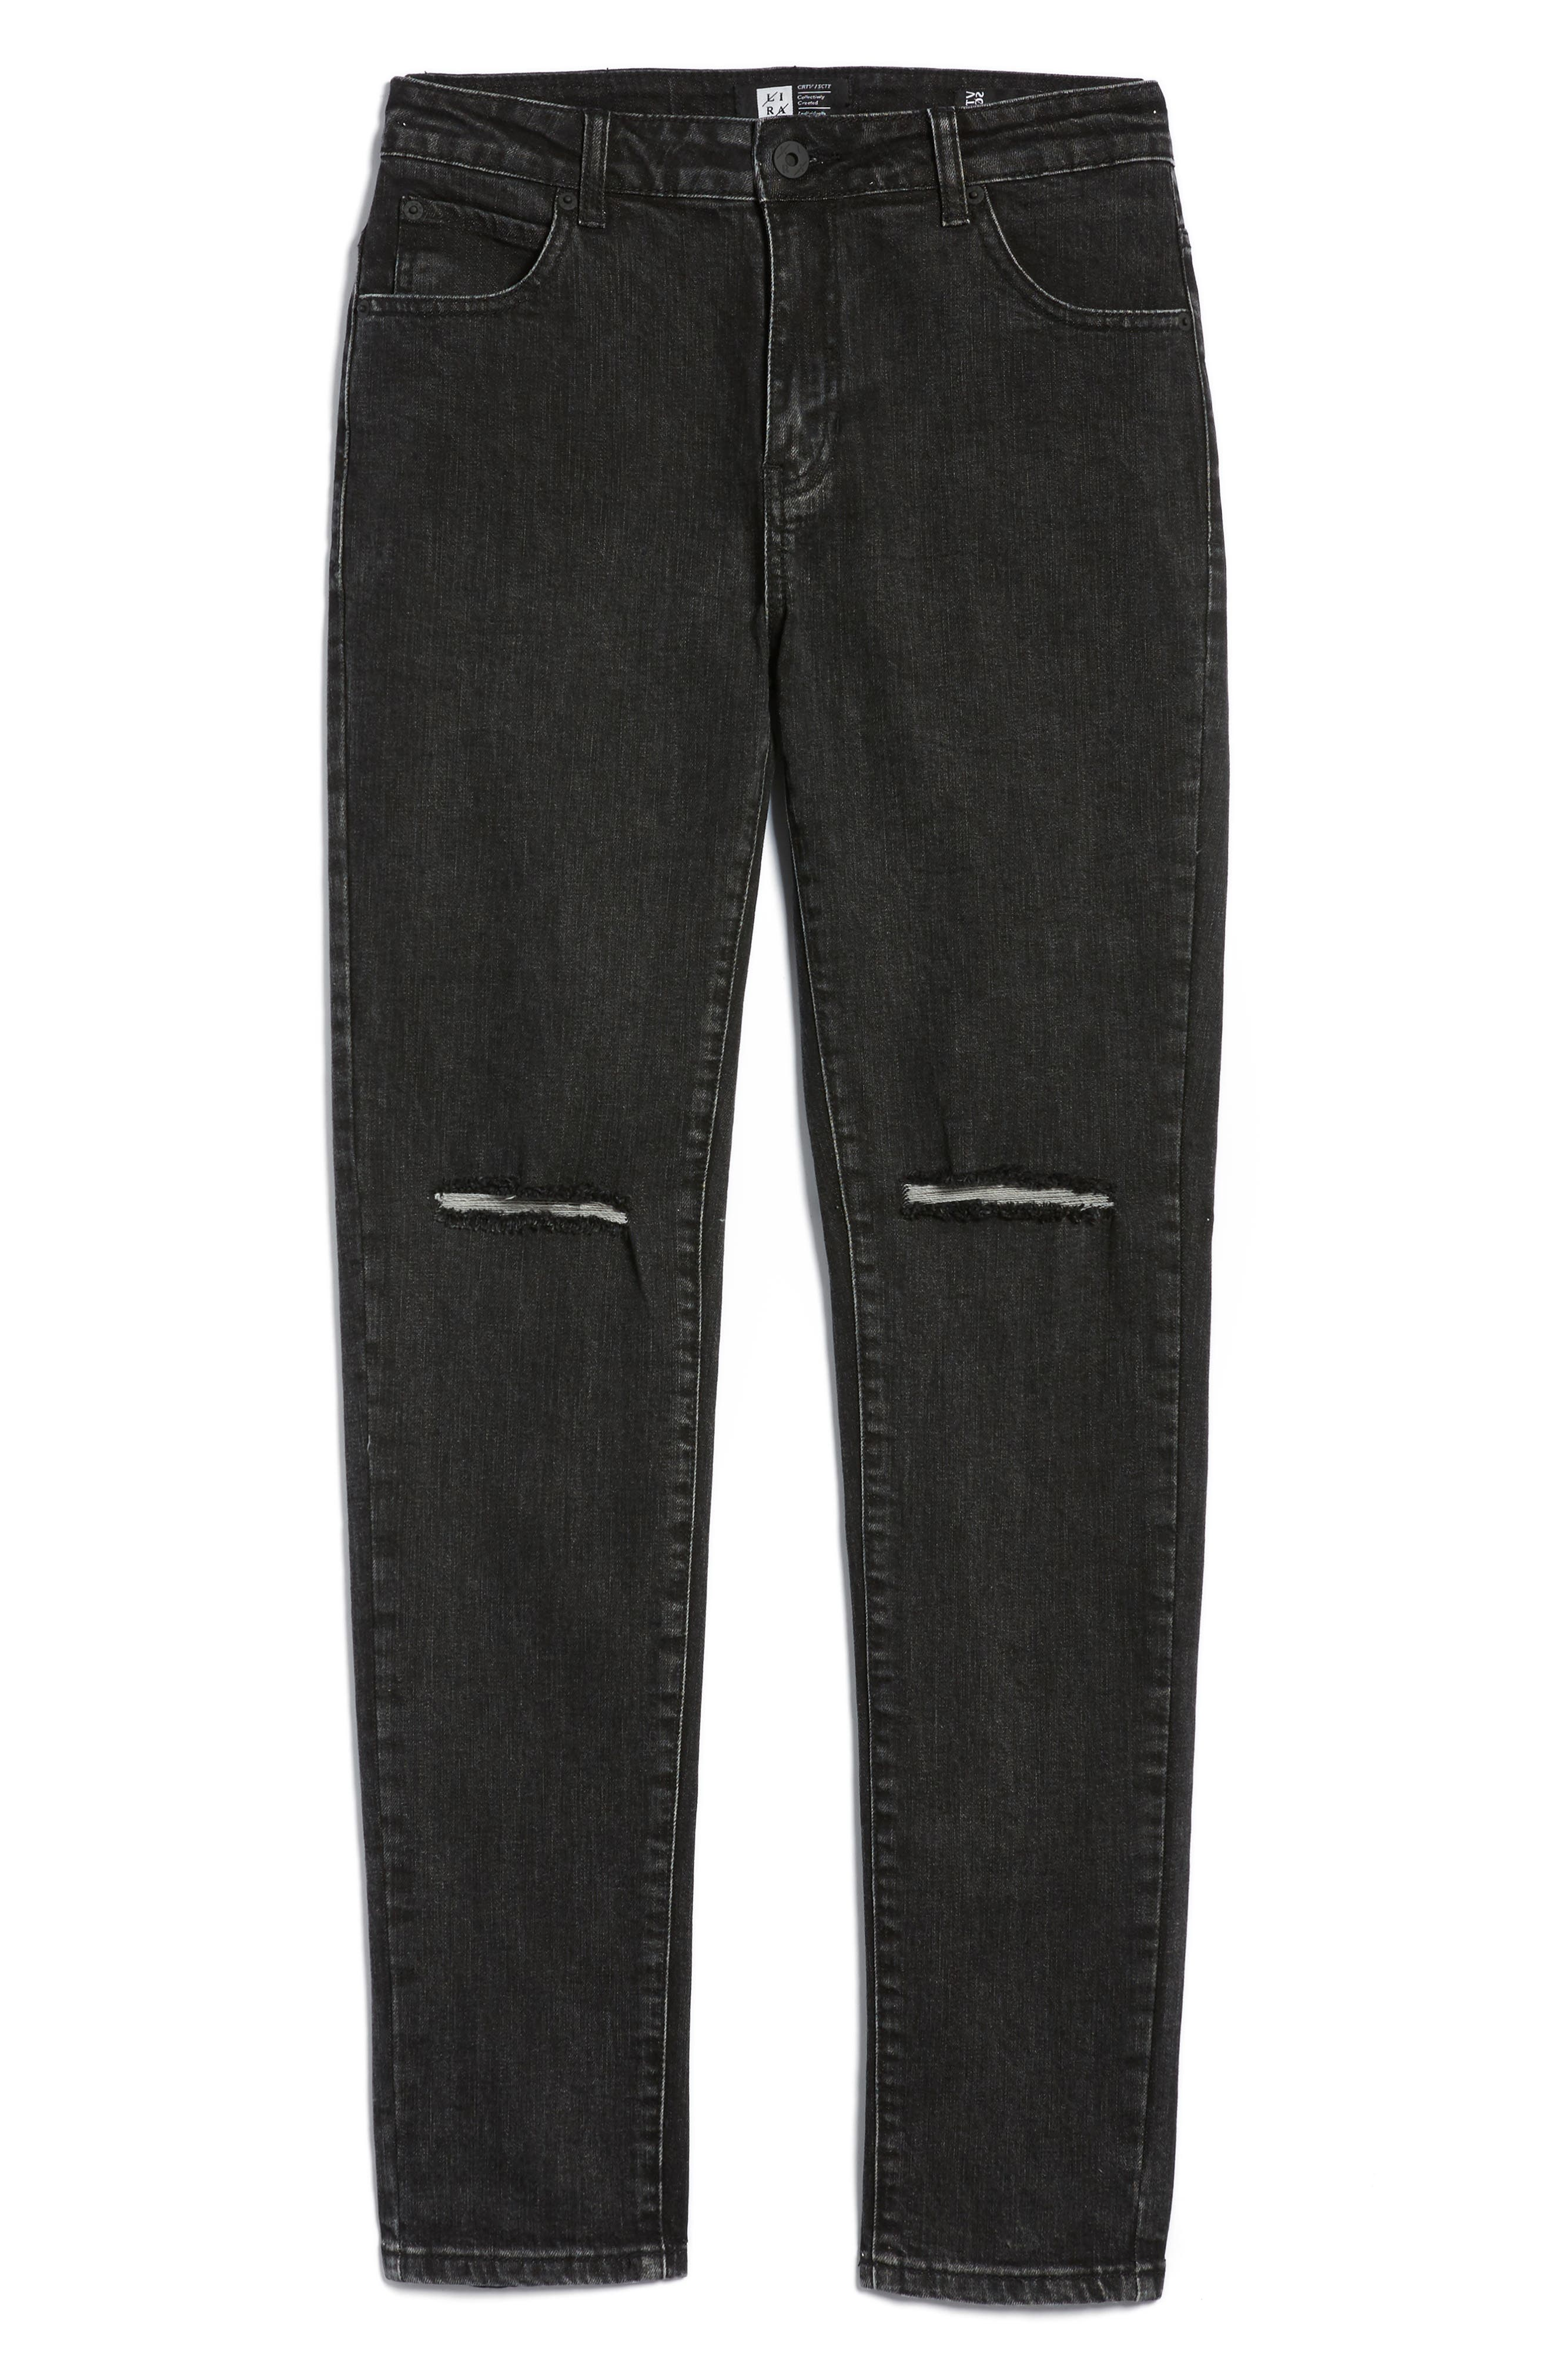 Baxter Ripped Jeans,                             Alternate thumbnail 6, color,                             001